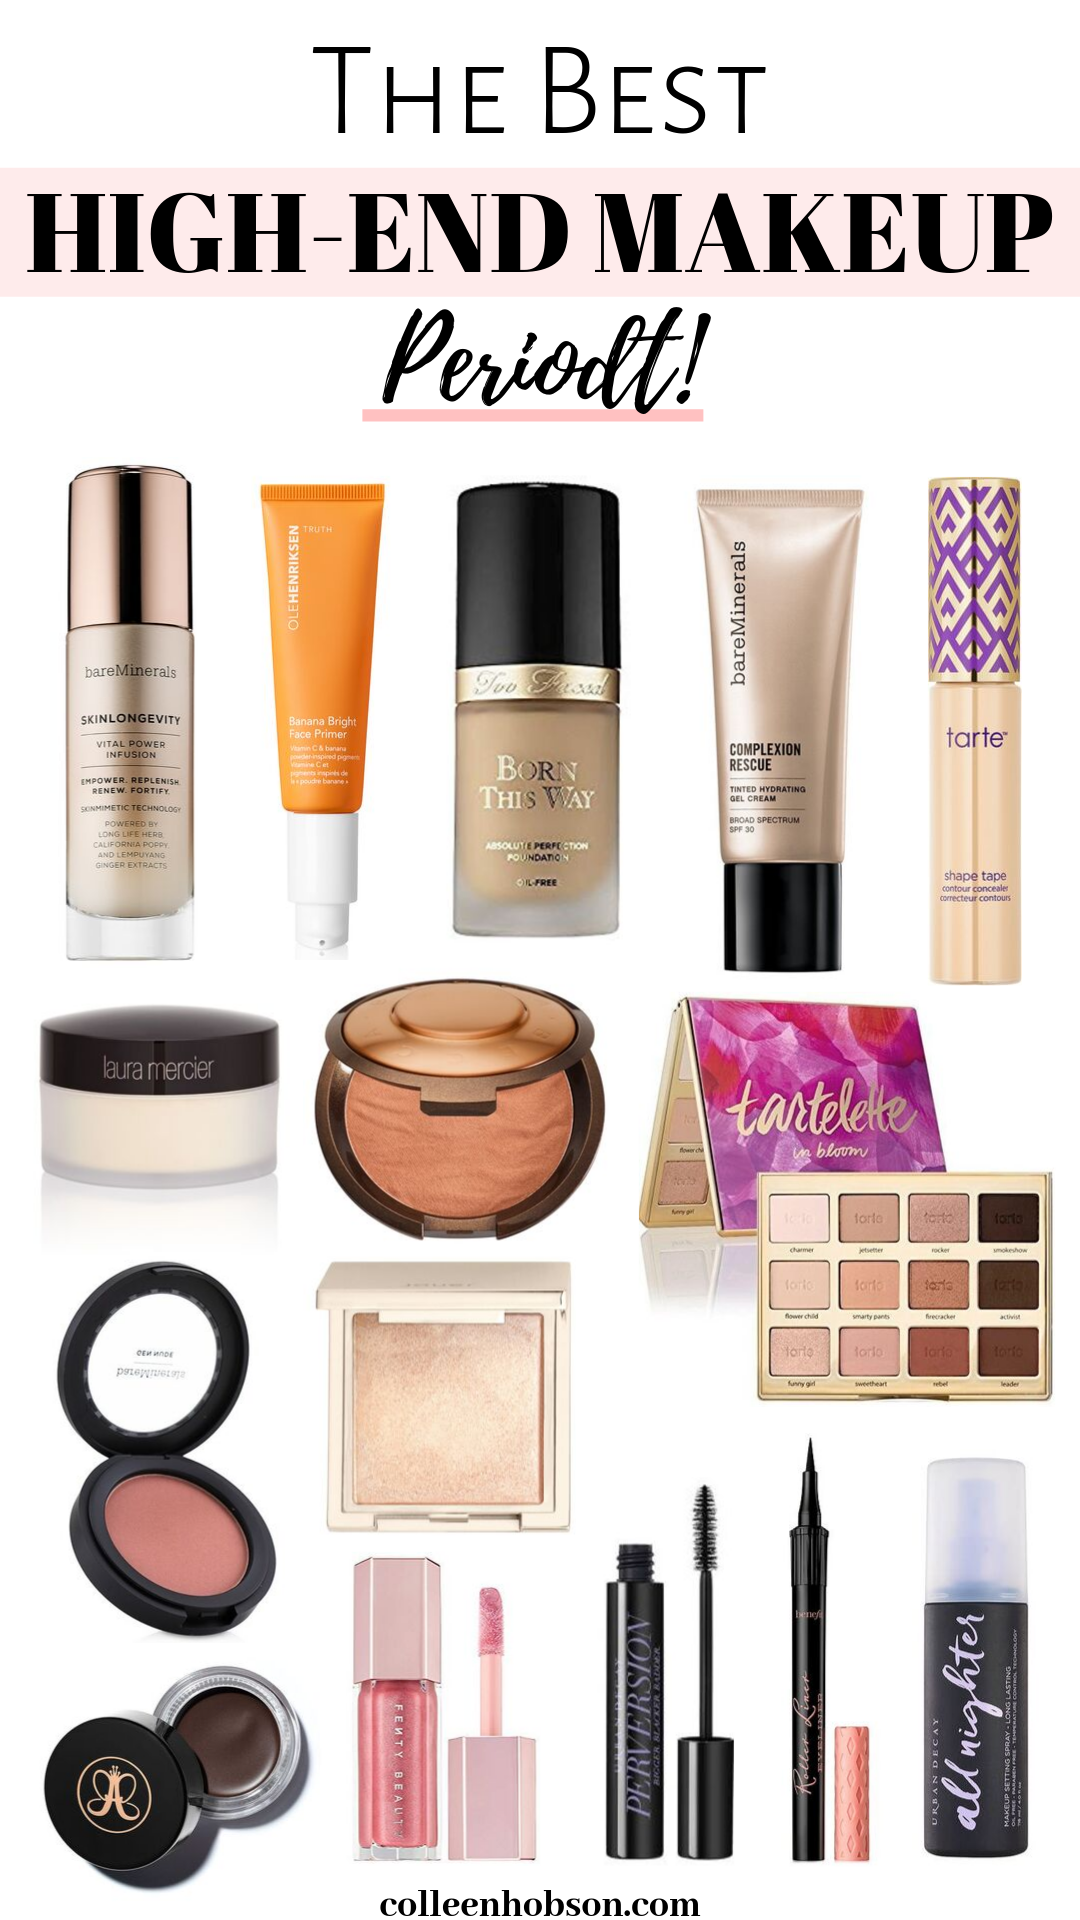 The Best High End Makeup Holy Grail Products Colleen Hobson In 2020 Best High End Makeup High End Makeup Top Makeup Products